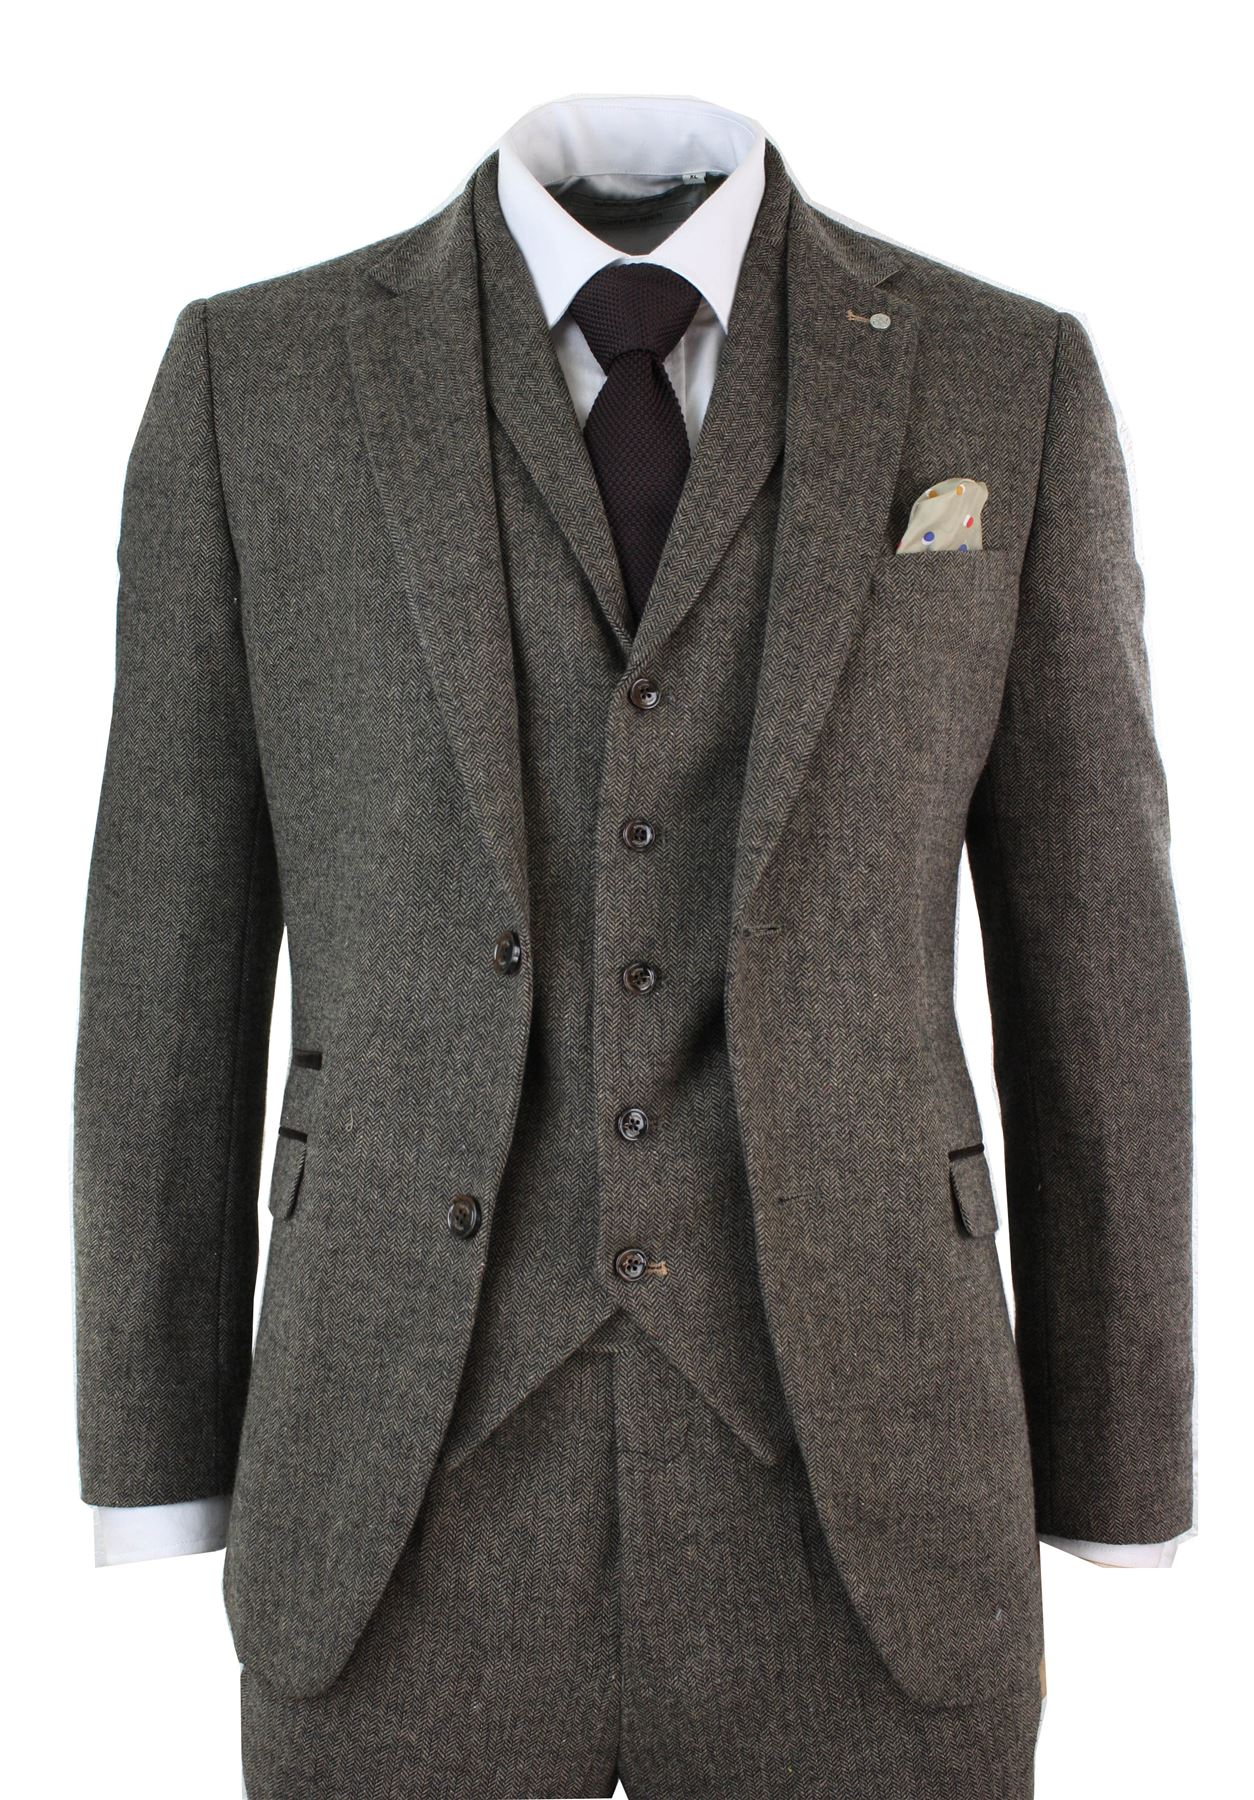 Get free shipping on BOSS Wool Three-Piece Suit at Neiman Marcus. Shop the latest luxury fashions from top designers.